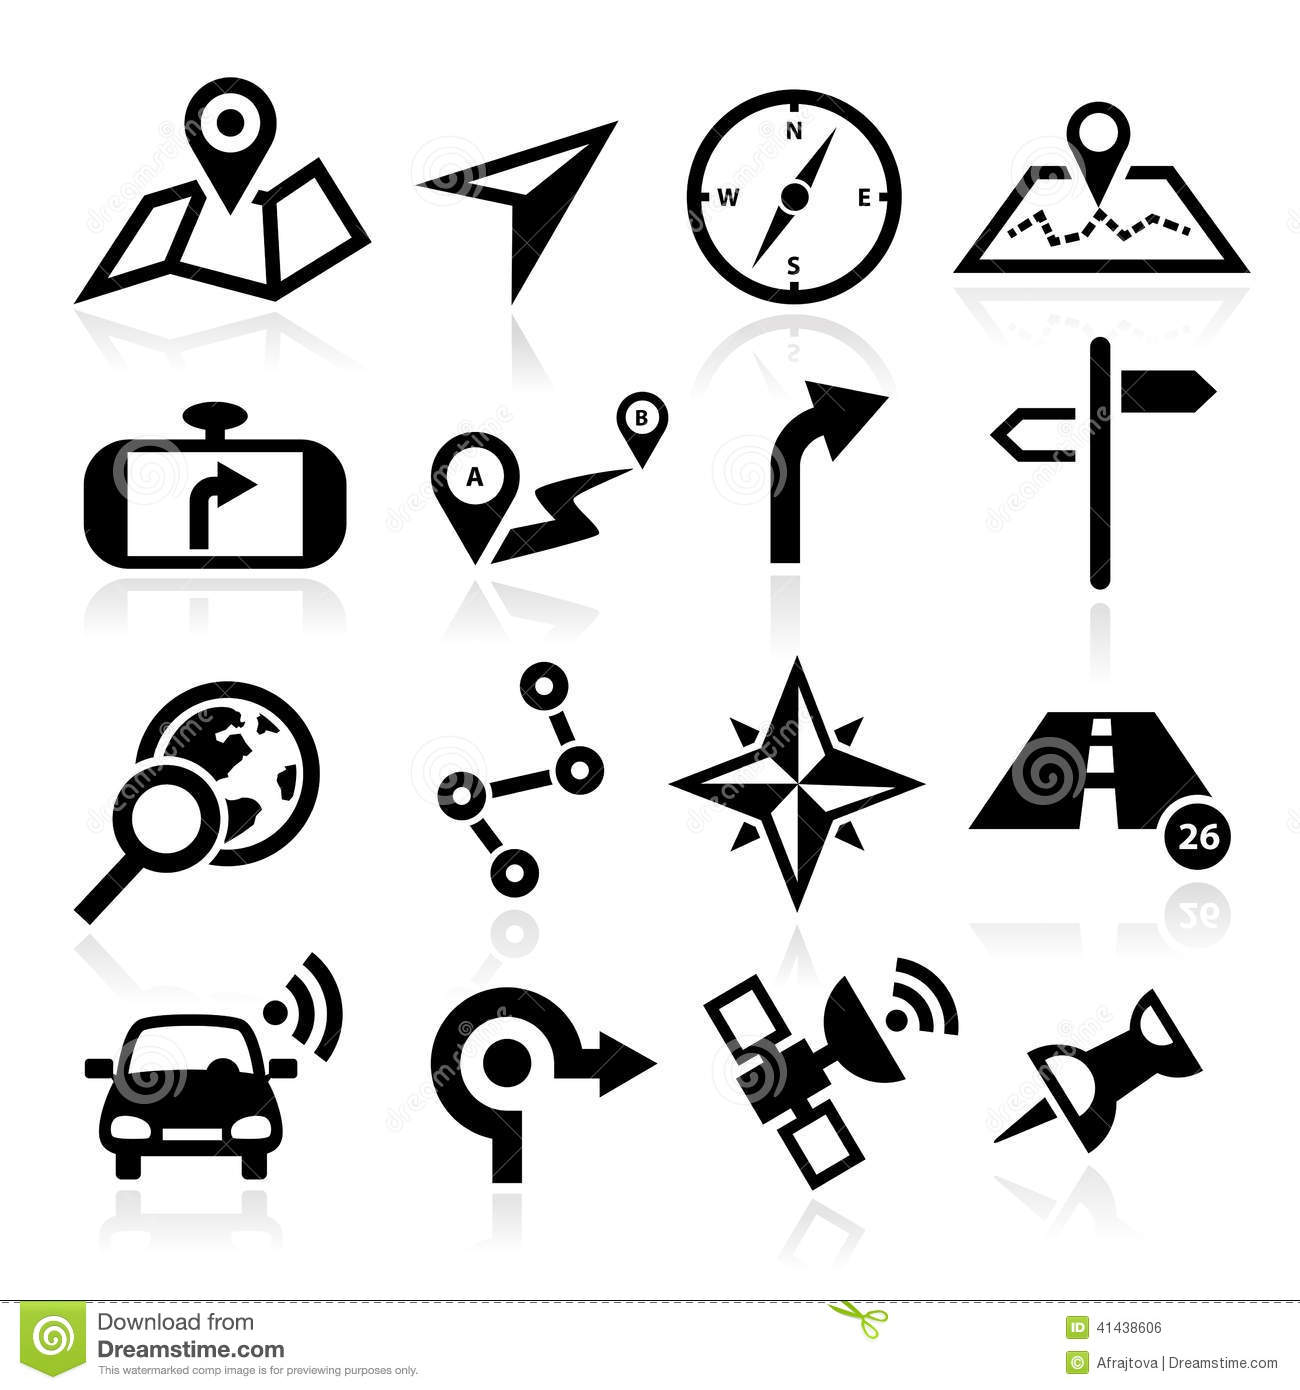 Navigation Icons stock vector. Illustration of element